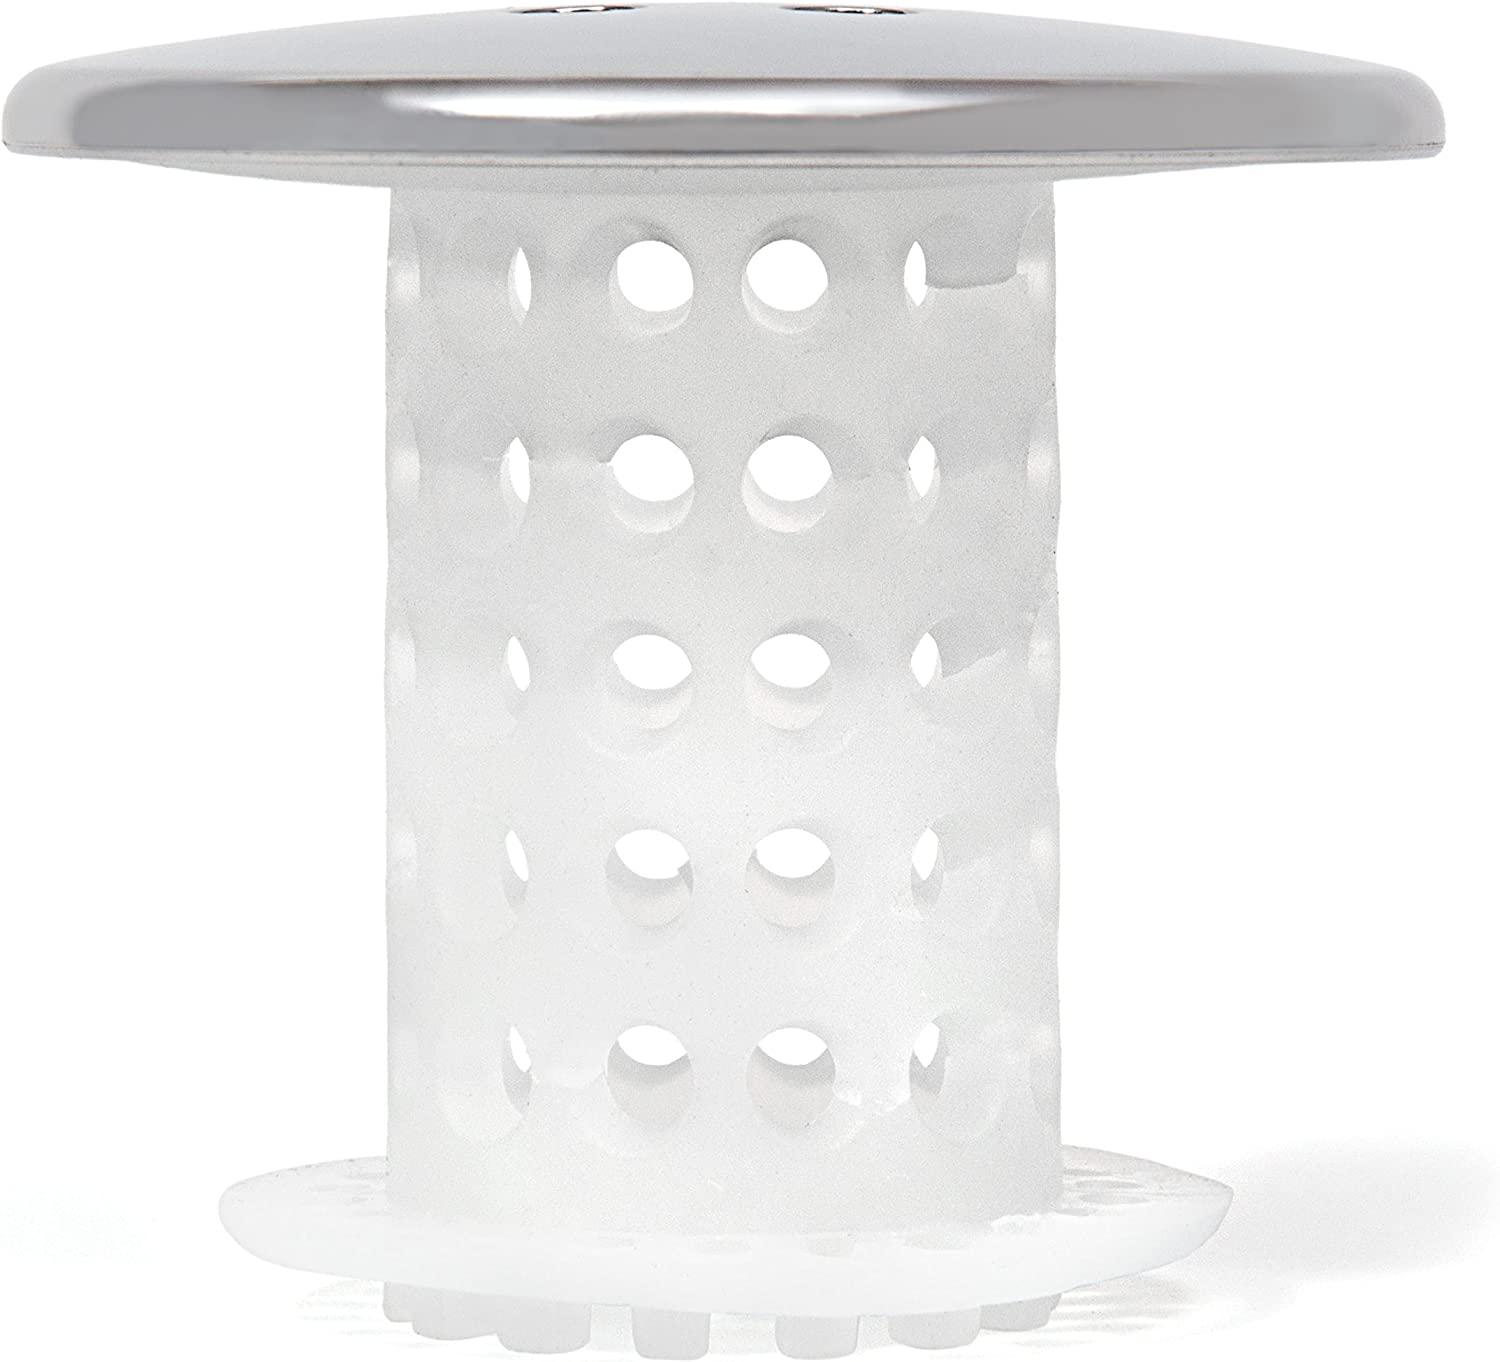 TubShroom Chrome Edition Revolutionary Tub Drain Protector Hair Catcher, Strainer, Snare: Home & Kitchen